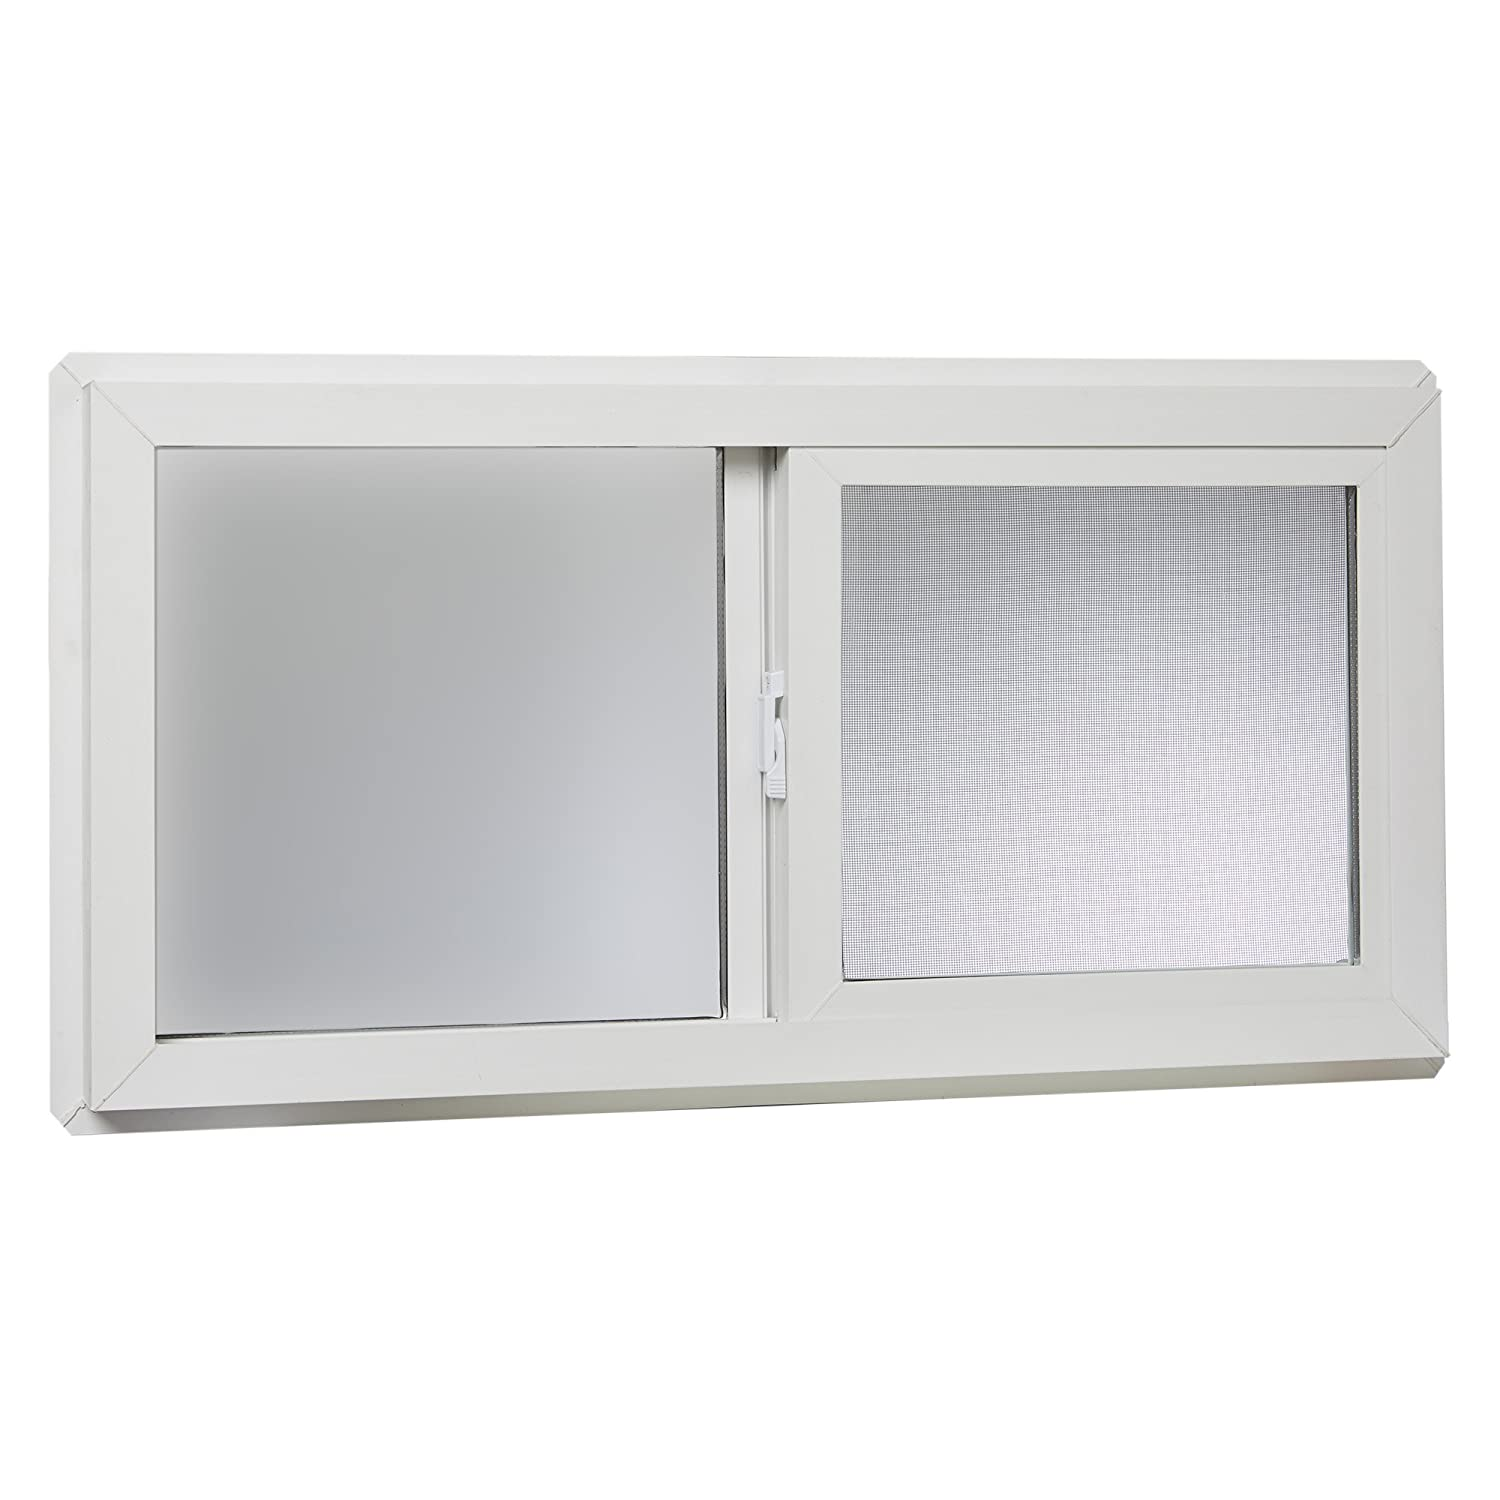 "Park Ridge VBSI3216PR Vinyl Basement Slider Window, 32"" x 16"", White"